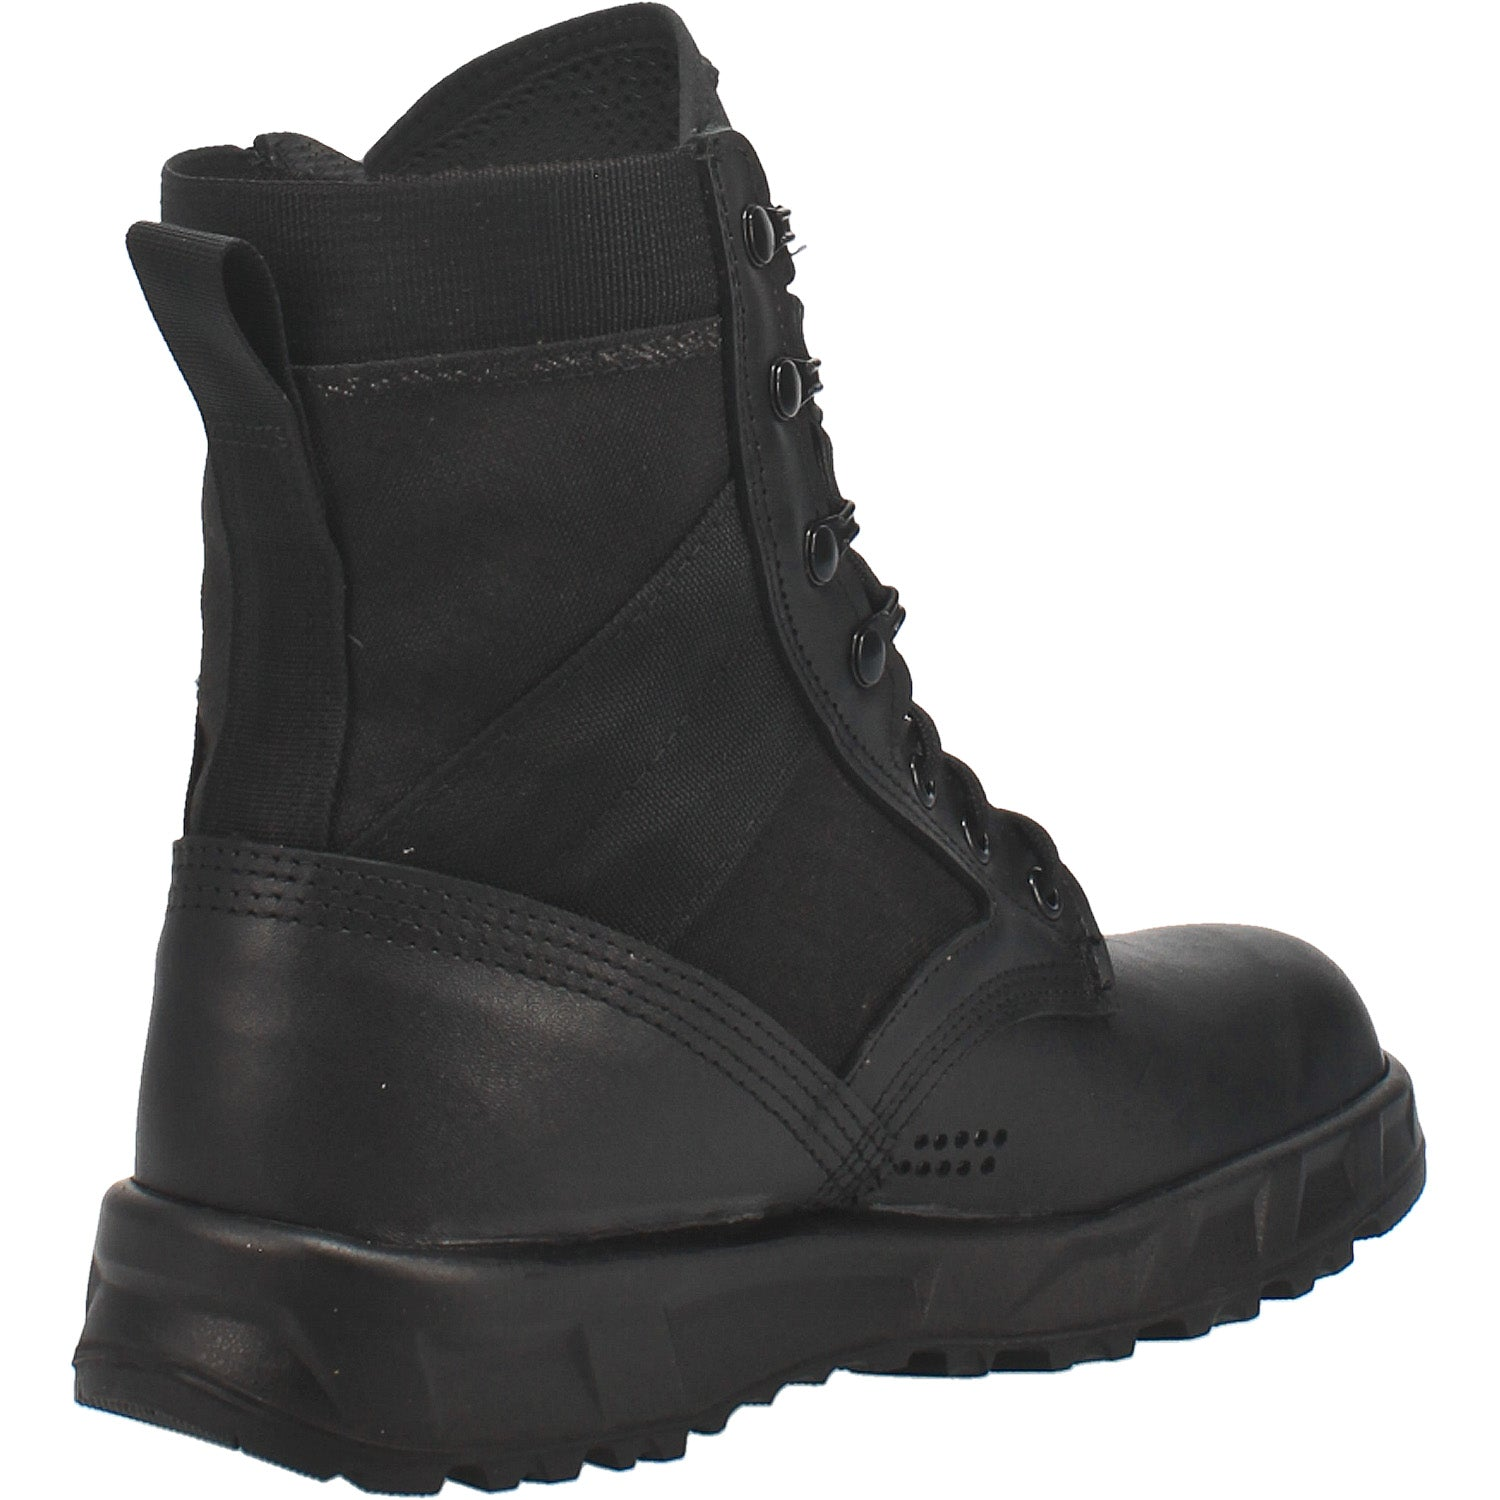 T2 Ultra Light Hot Weather Combat Boot 14940878471210